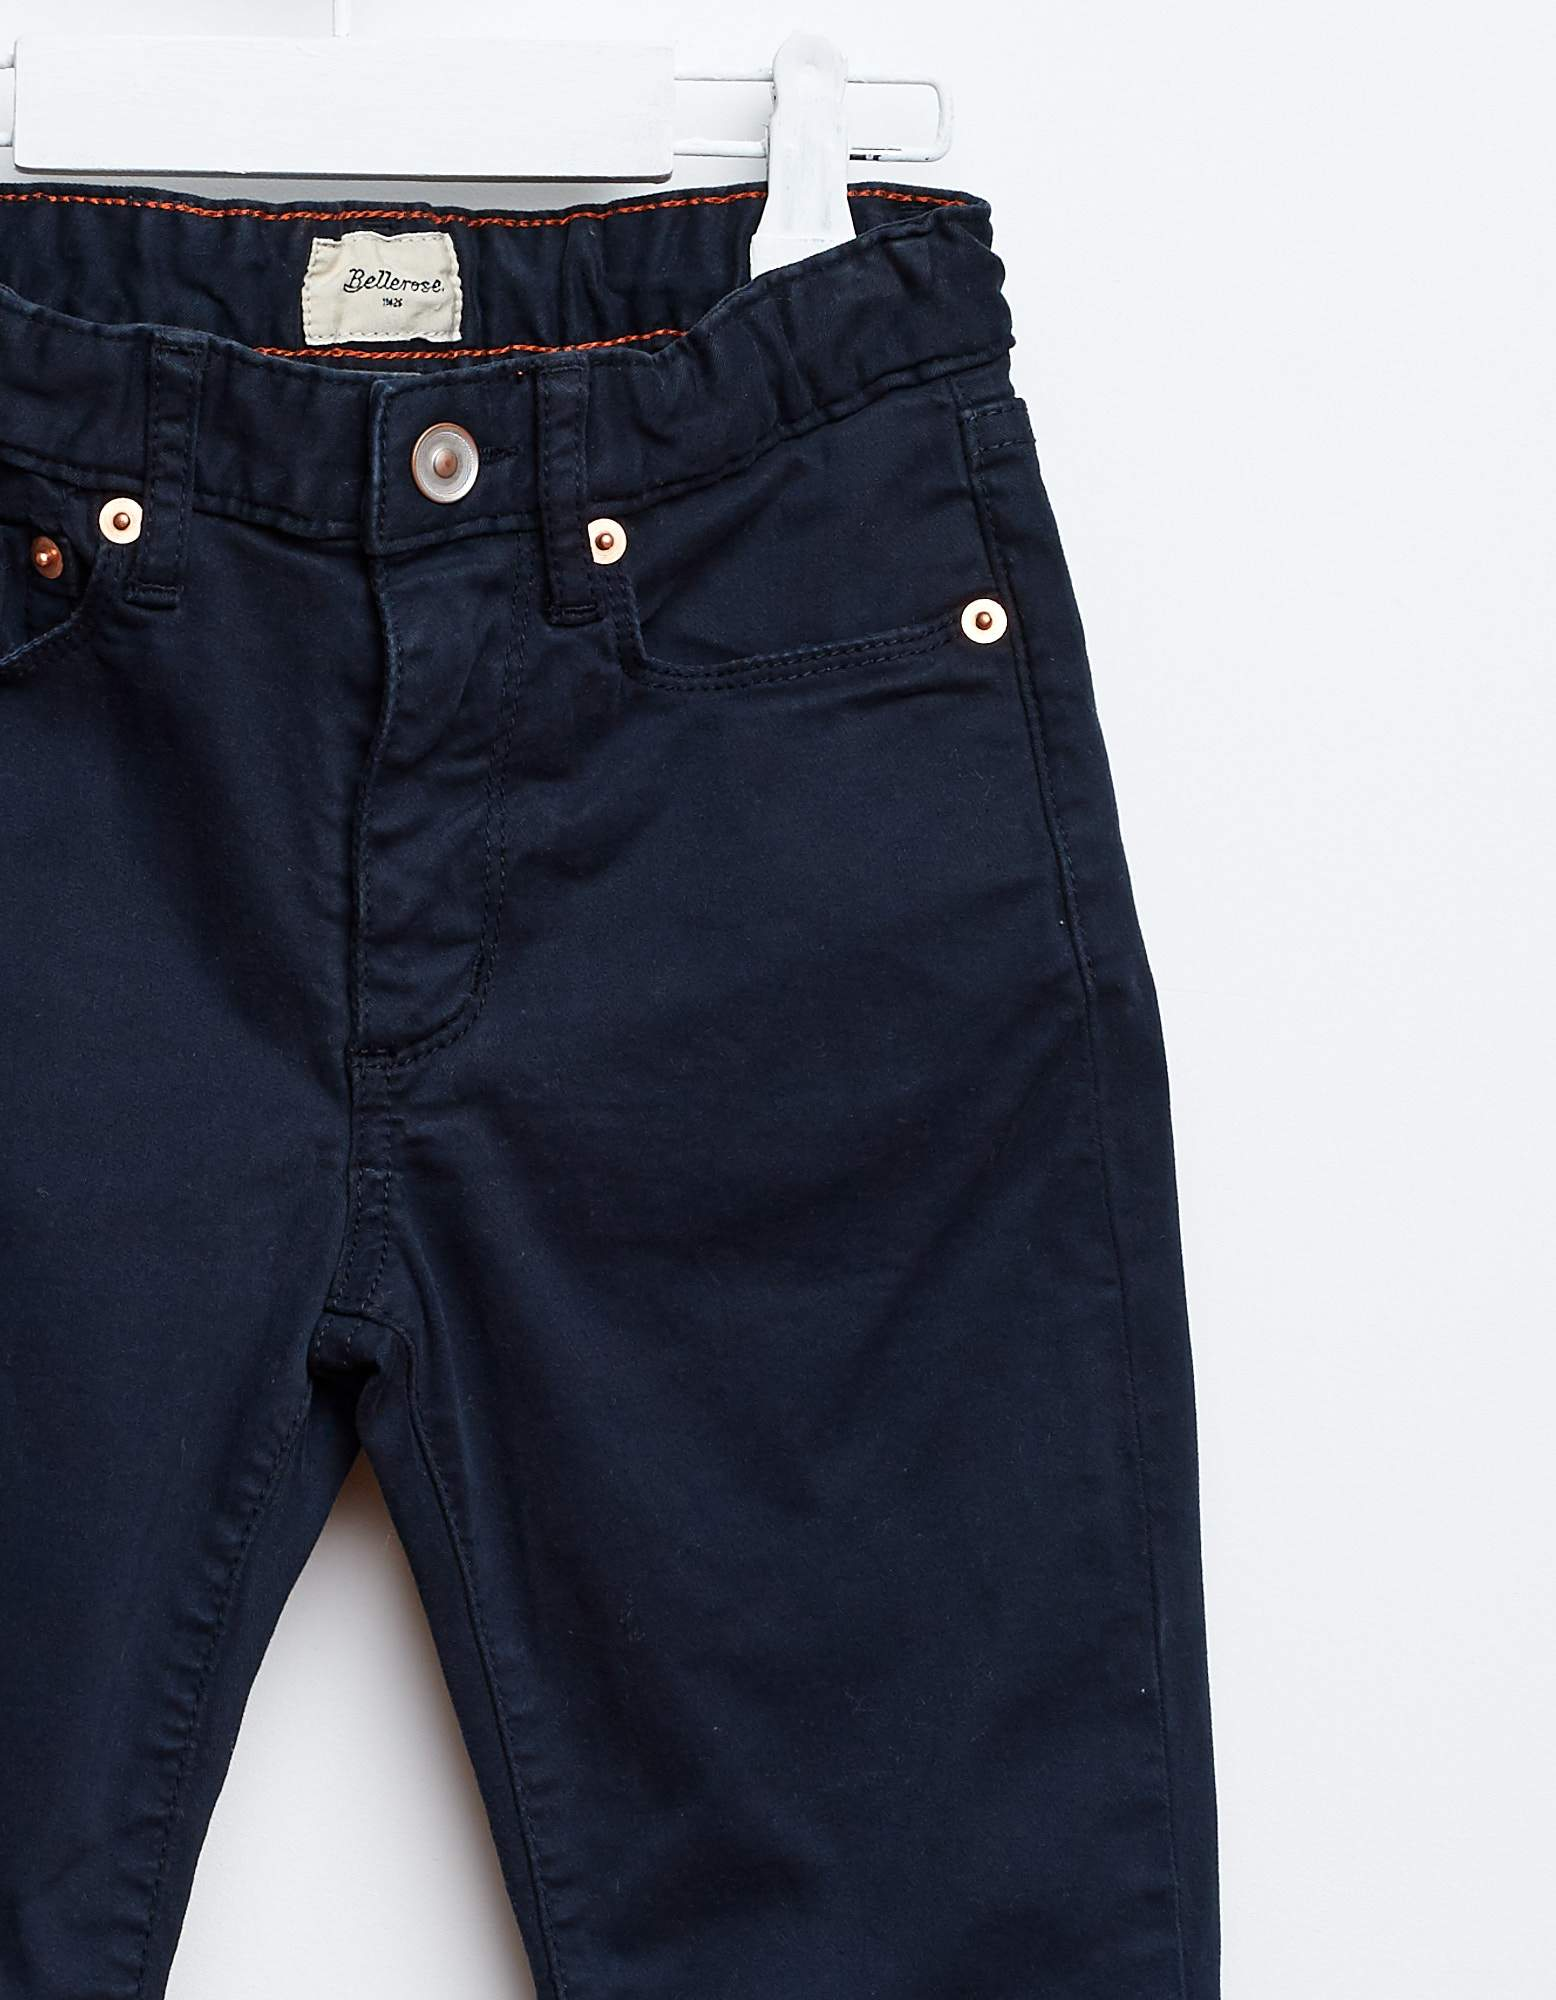 Bellerose Navy Pants - Ladida